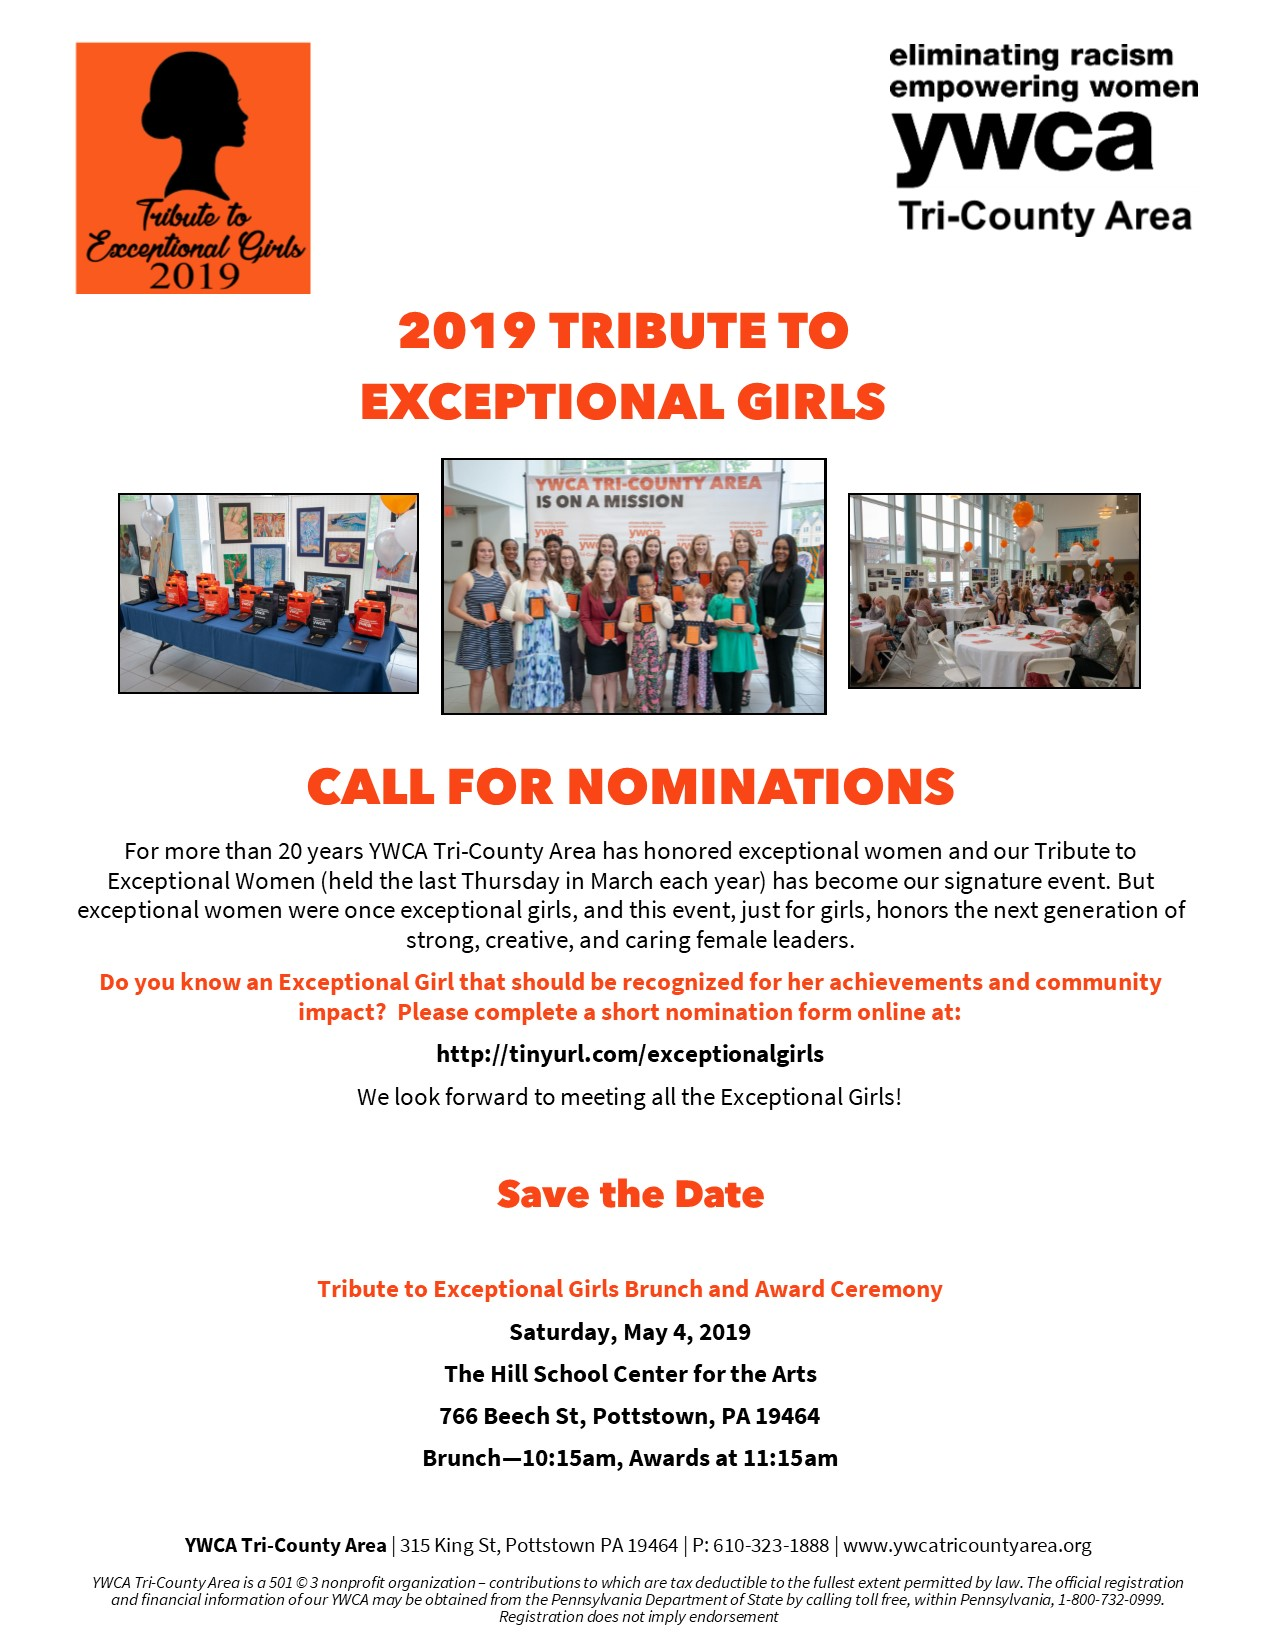 2019 Tribute to Exceptional Girls